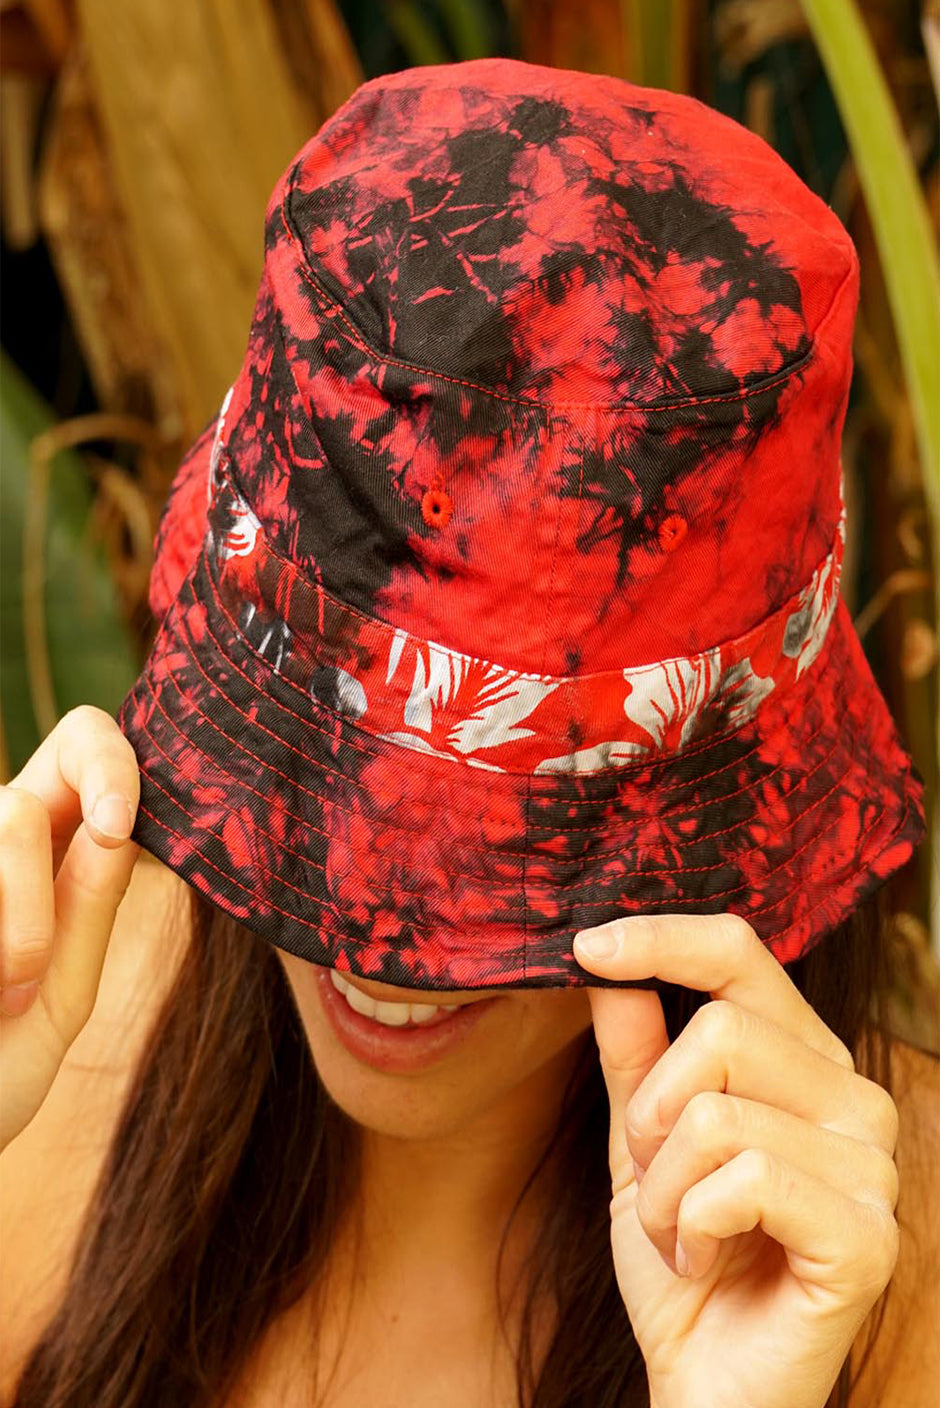 One of a kind handmade embellished Tie Dye Kai aloha shirt by Paneros Clothing. Luna Bucket Hat // Lava Tie Dye, Size O/S. View 1